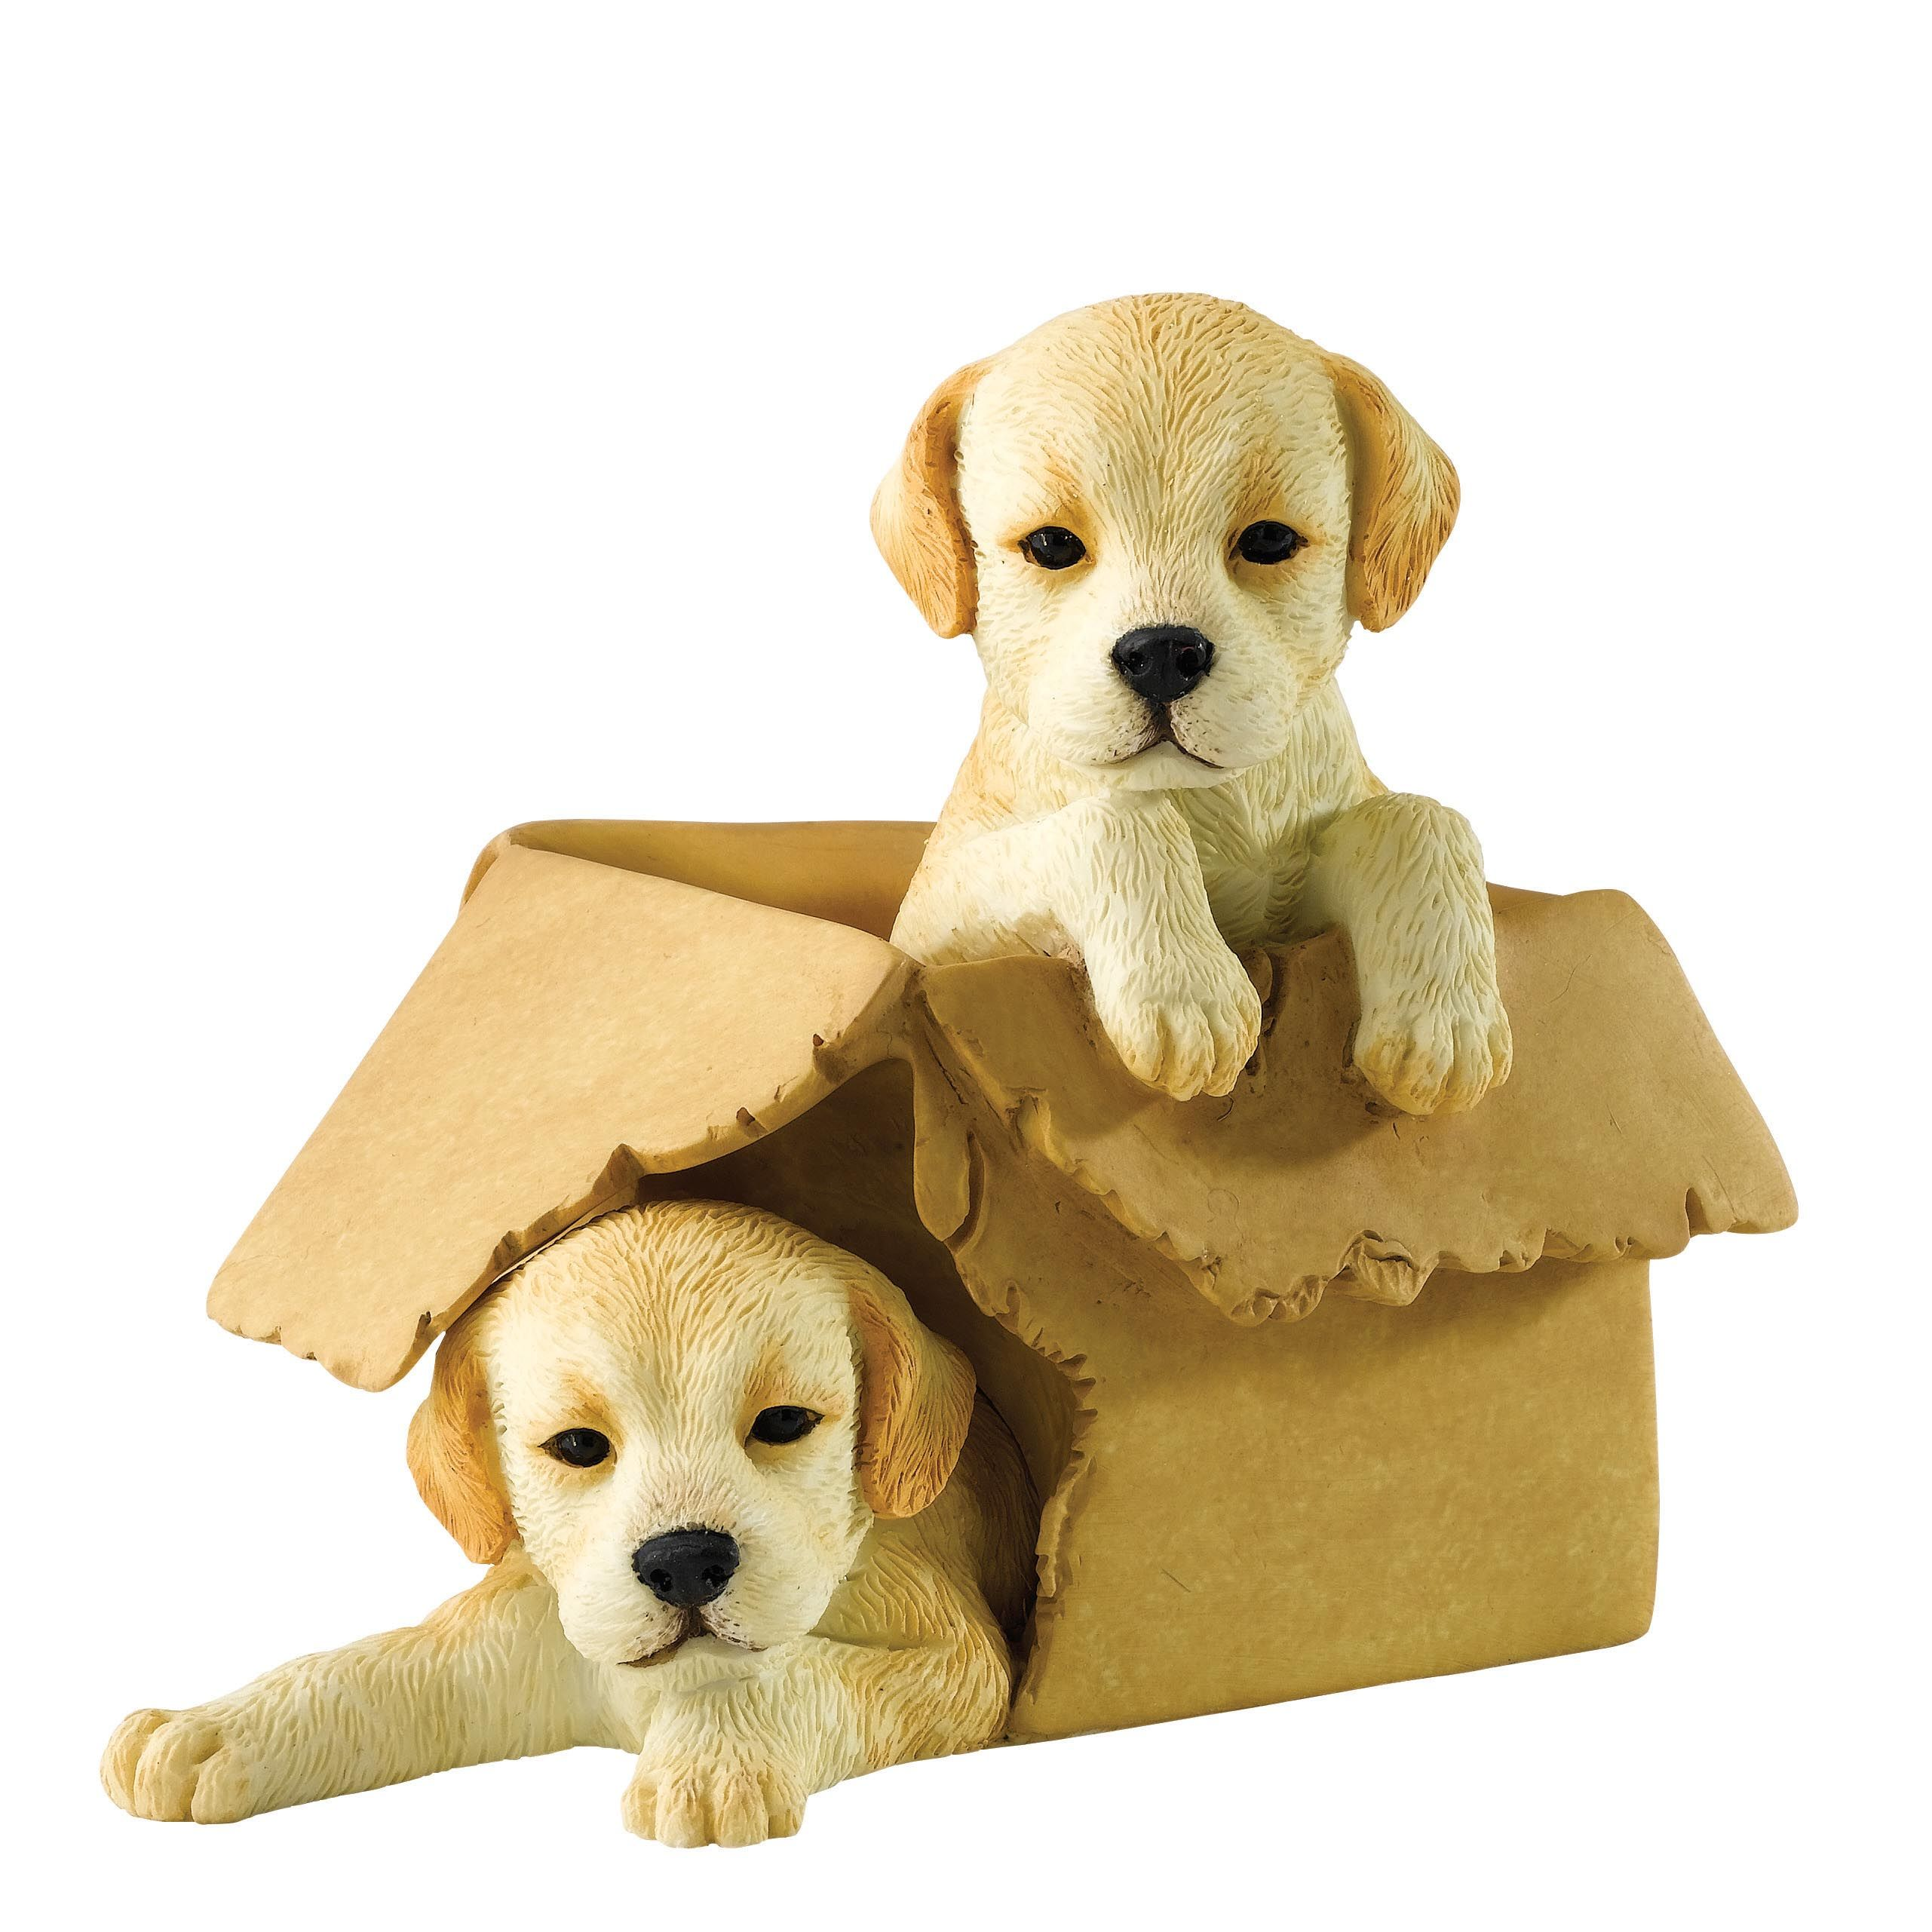 A27509 Boxed It (Golden) playful labradors puppies